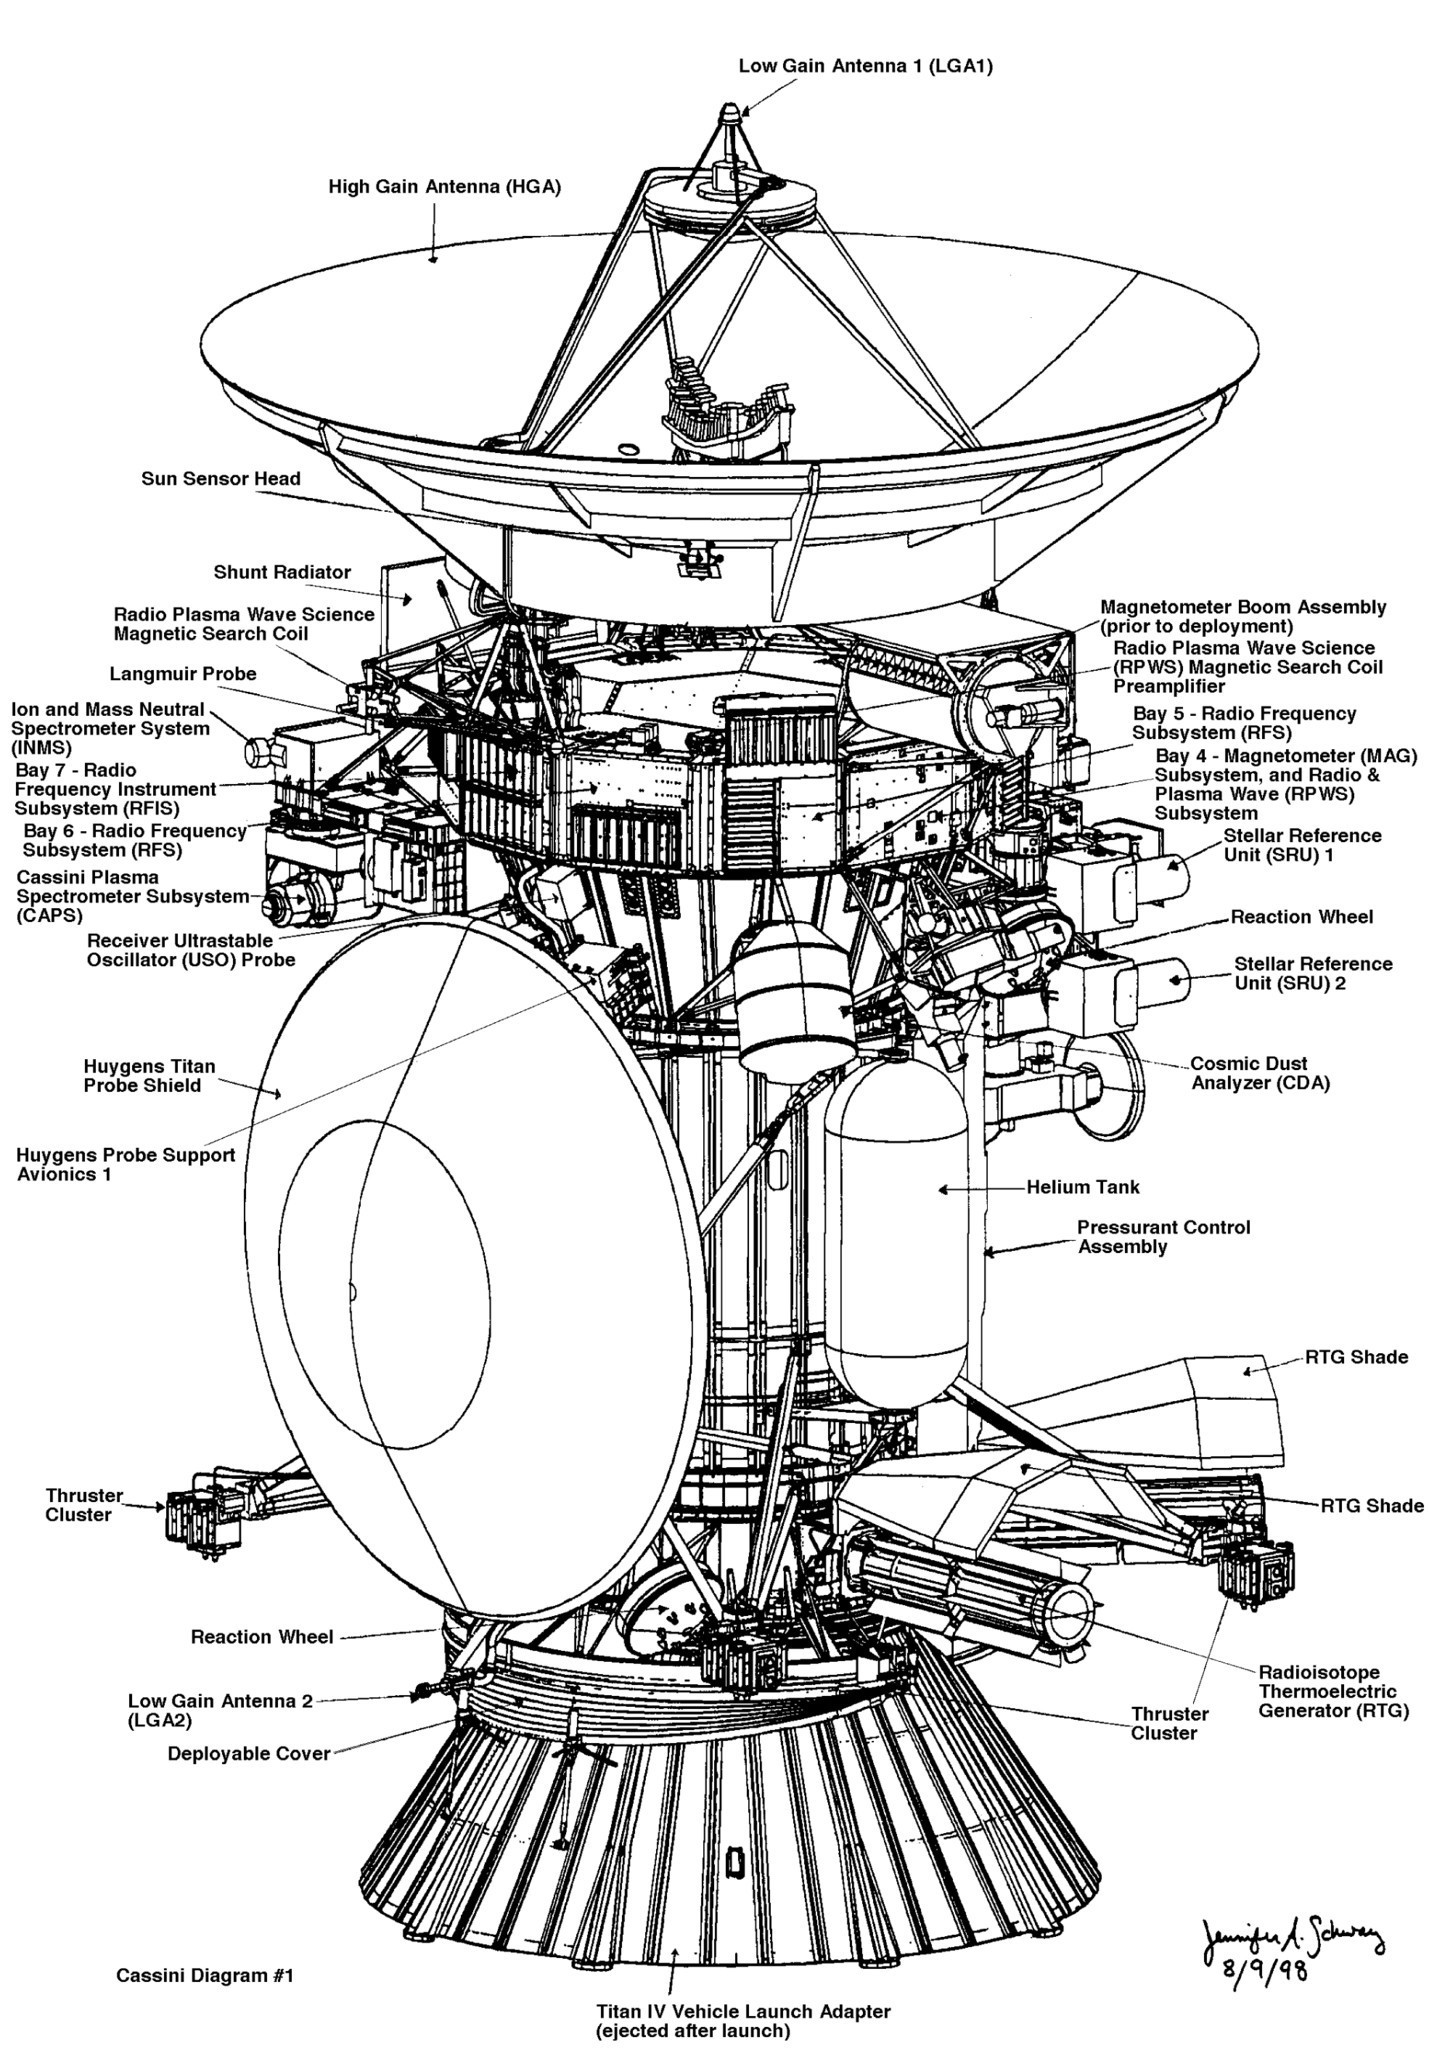 hight resolution of above a diagram of the cassini spacecraft and huygens probe from here nasa jet propulsion laboratory open in a new window for full size so you can see